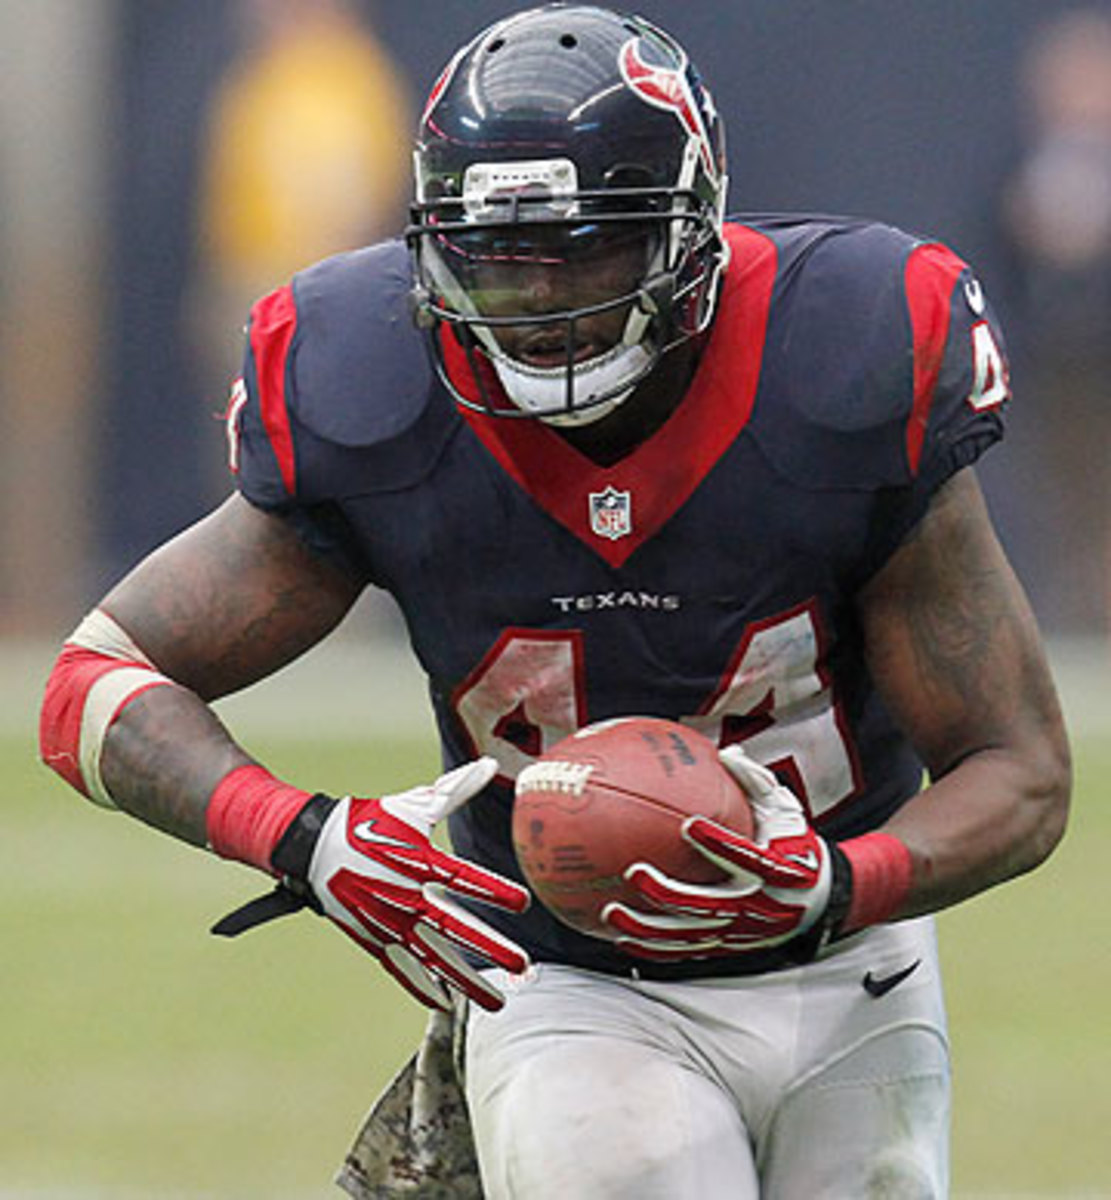 With only 421 career carries, Ben Tate was more desirable than more experienced backs on the free-agent market. (Thomas B. Shea/Getty Images)